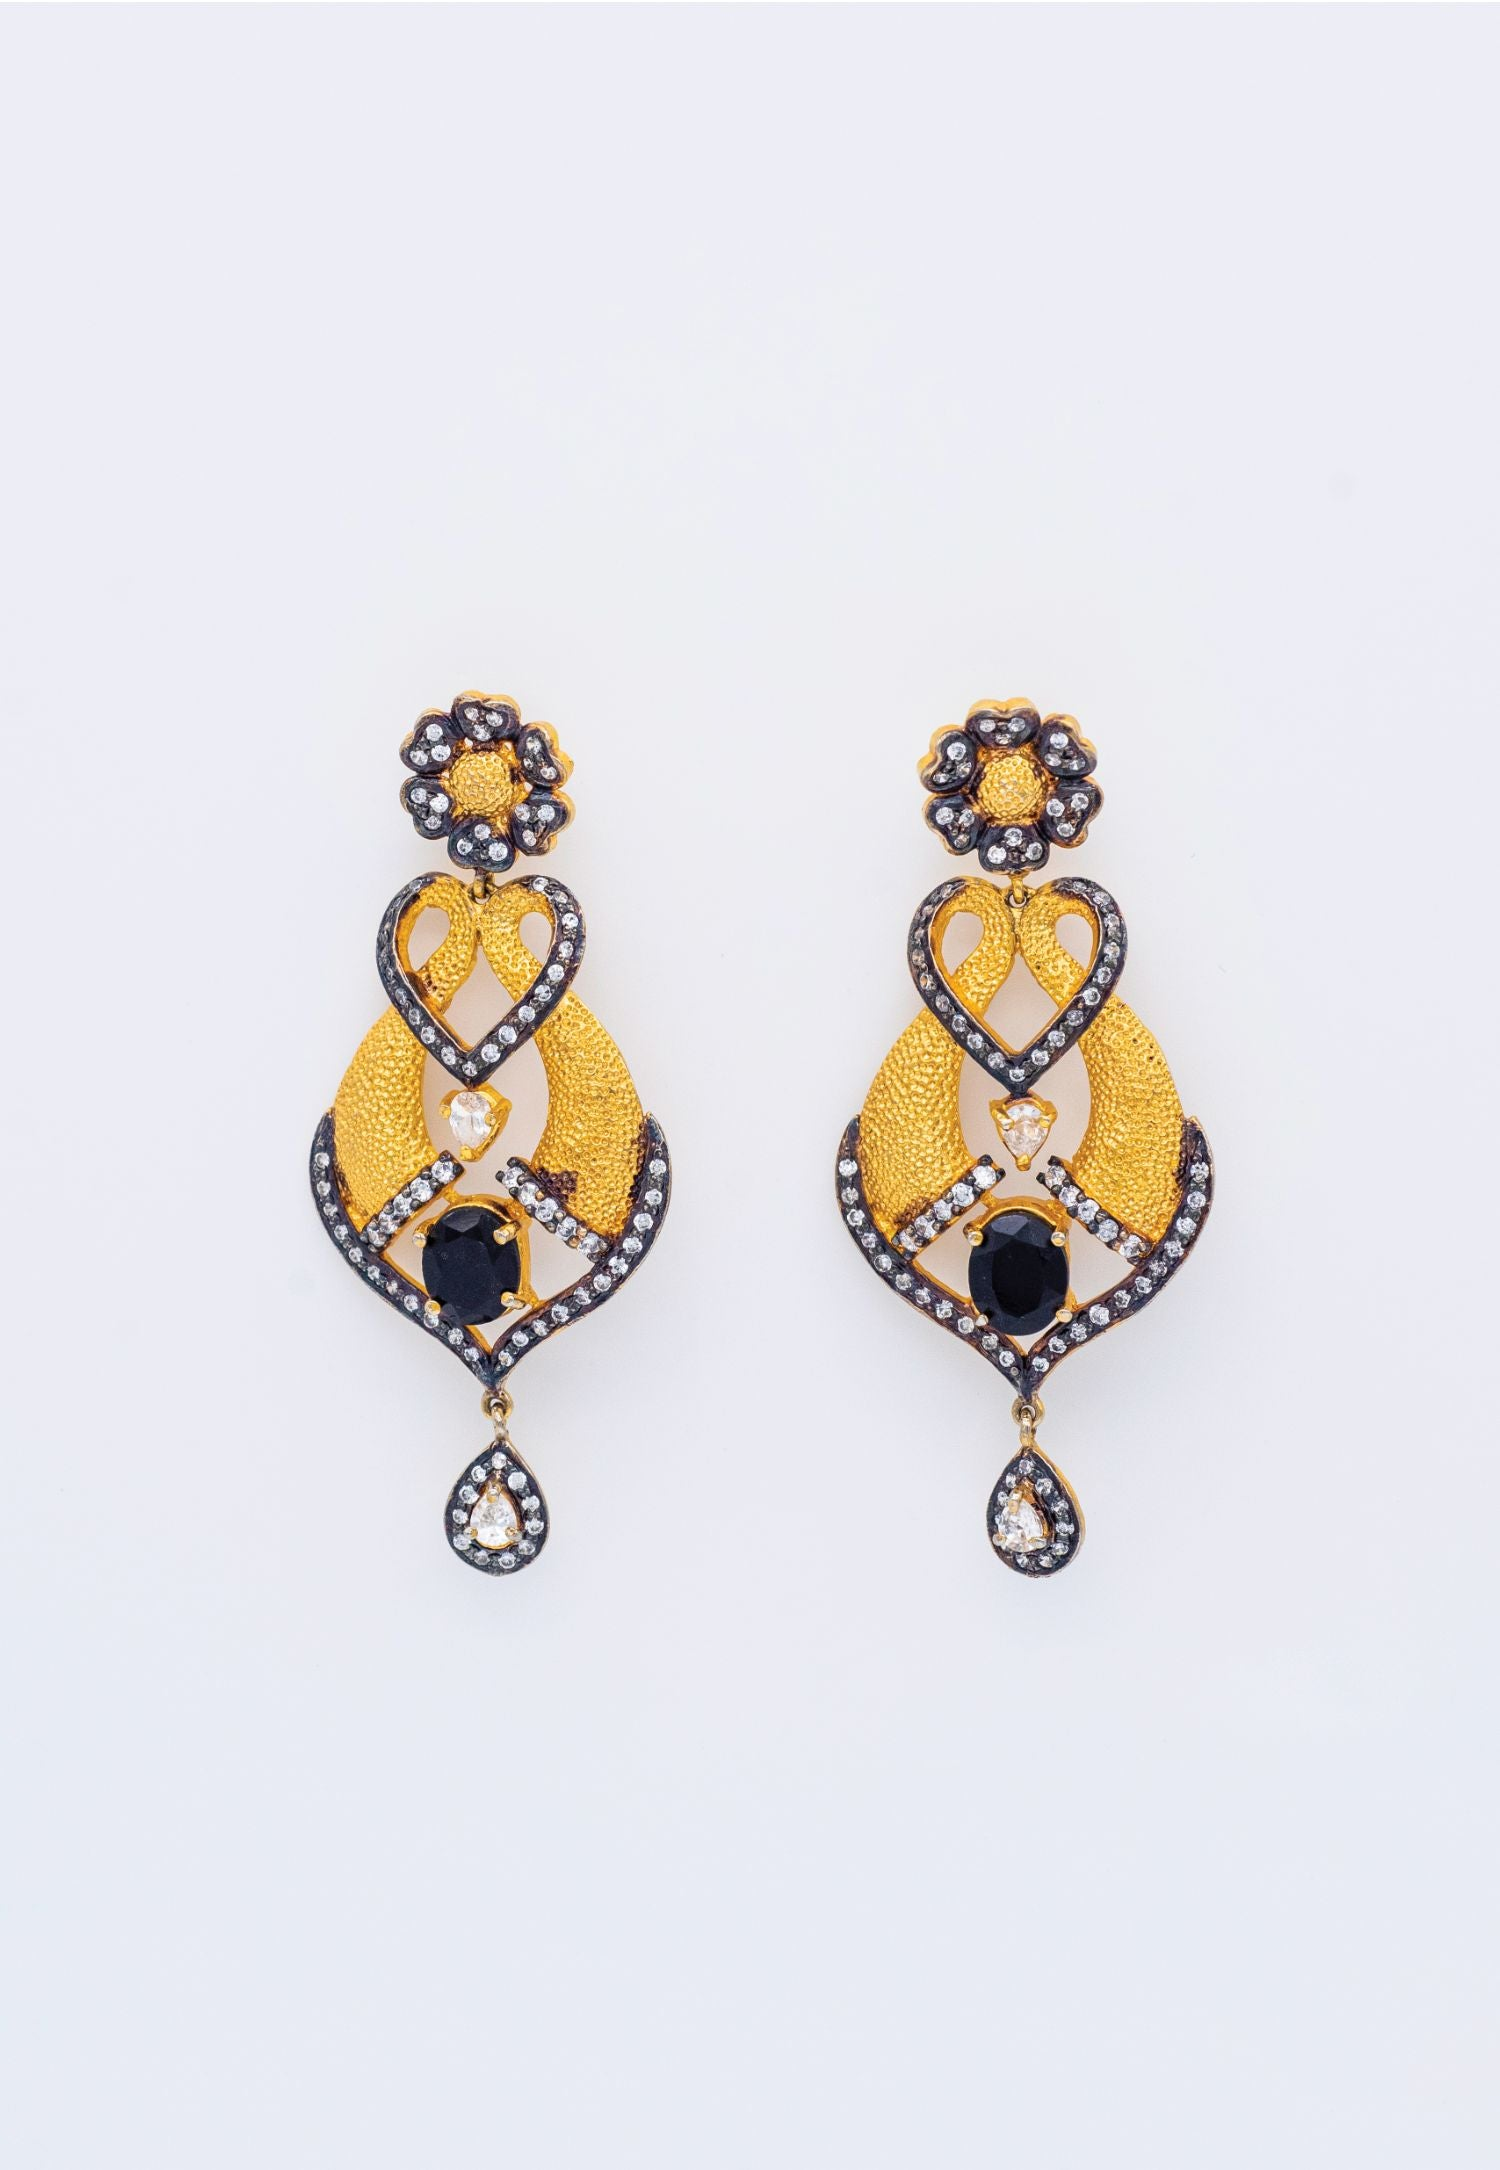 MARCASITE AND GOLD EARRINGS